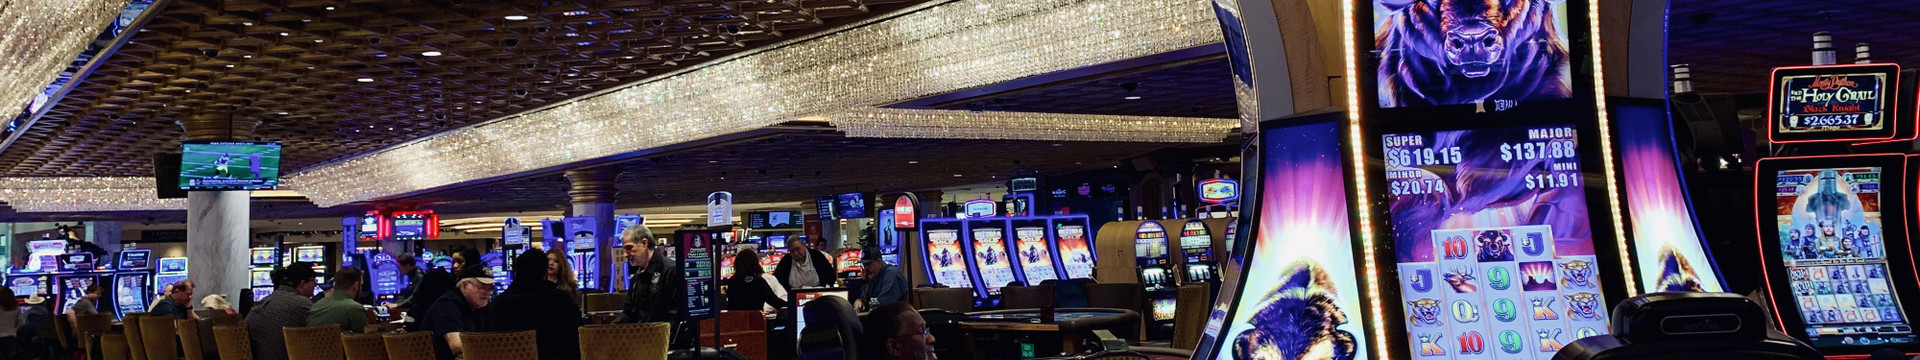 Win Big at the Sir Winston Tailgate $40,000 Slot Tournament January 24-26, 2020 at the Westgate Las Vegas Resort & Casino